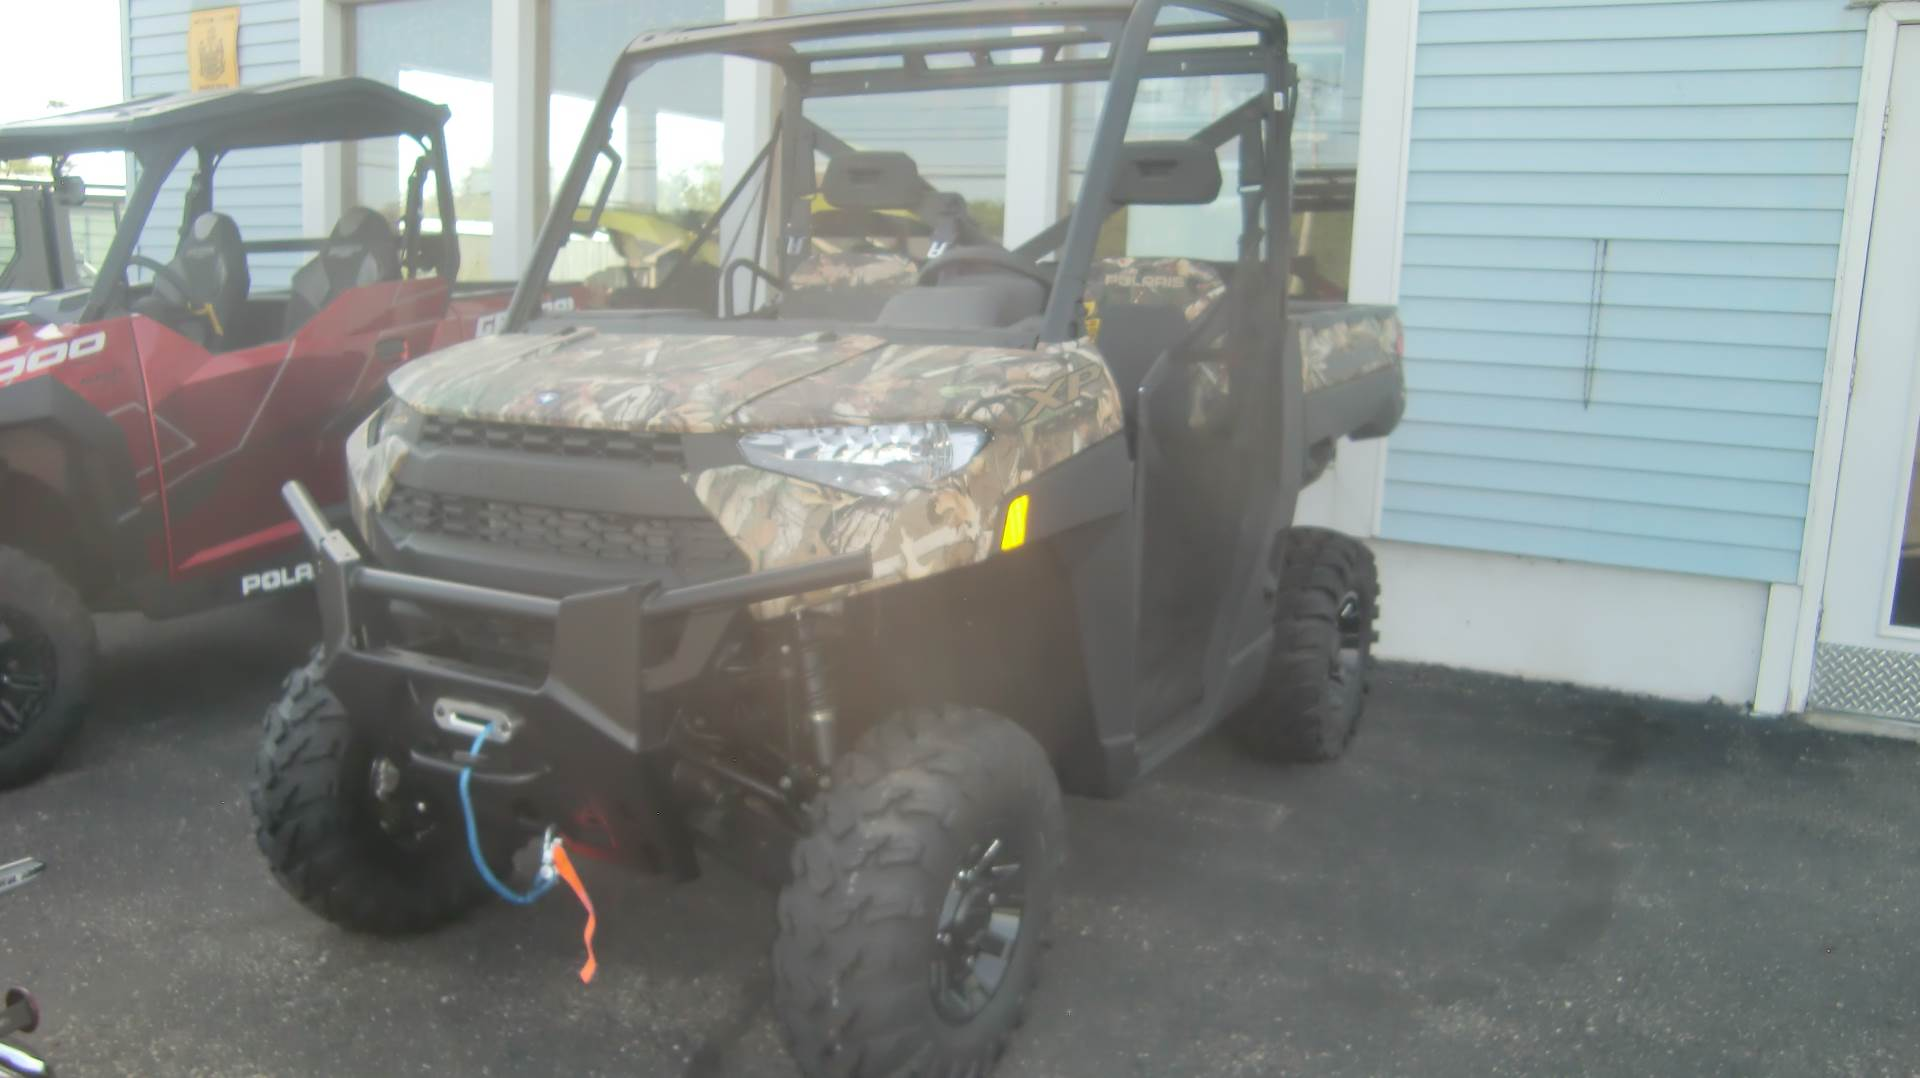 2020 Polaris RANGER XP1000 PREMIUM WINTER PREP. PKG. in Lincoln, Maine - Photo 2